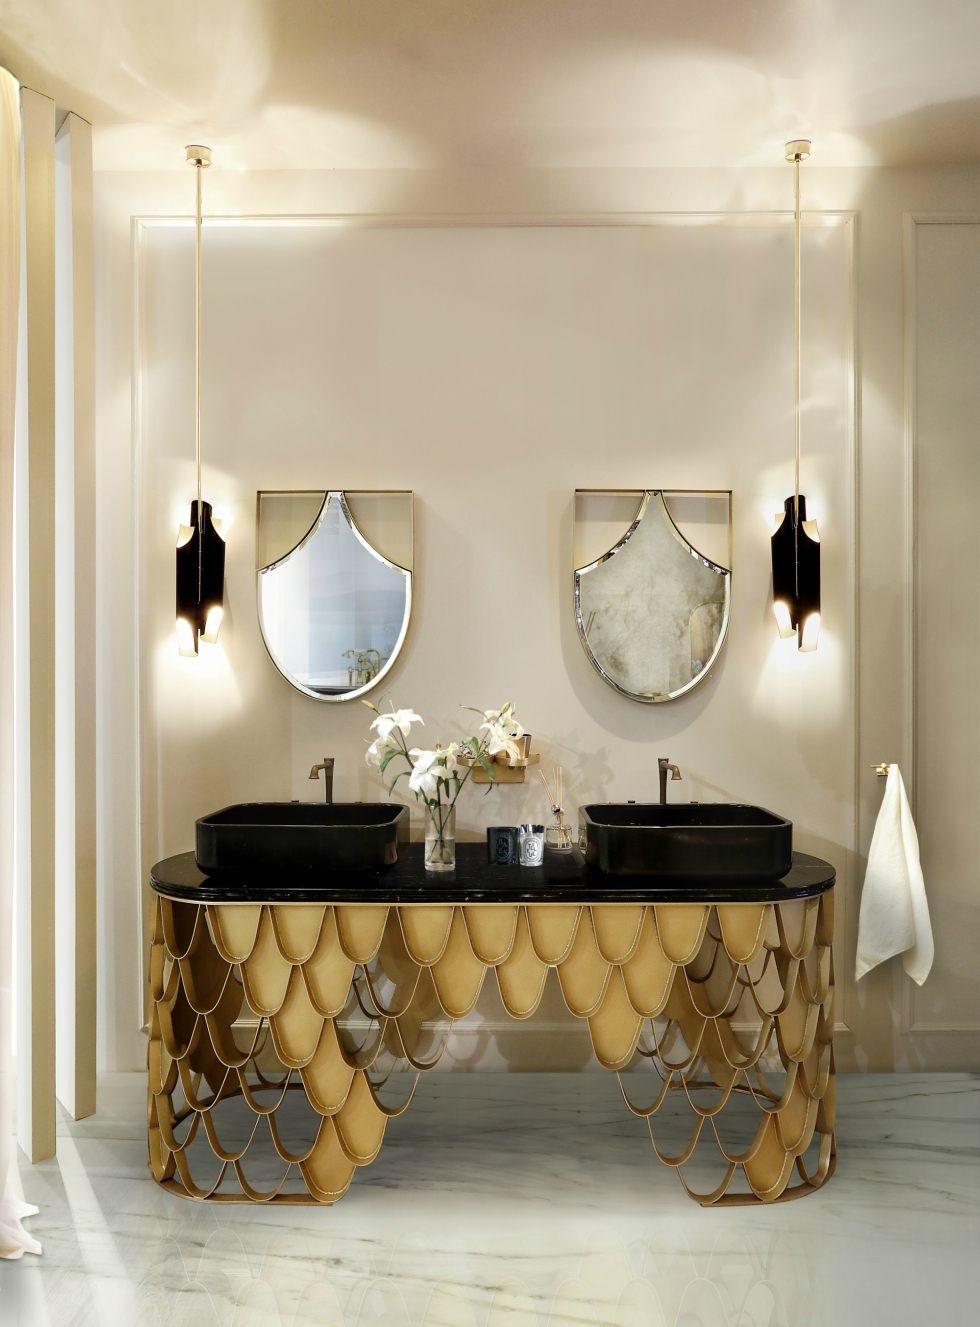 Beautiful and Unusual Washbasins for Luxury Bathrooms Beautiful and Unusual Washbasins for Luxury Bathrooms Beautiful and Unusual Washbasins for Luxury Bathrooms 40 koi washbasin koi mirror 1 HR